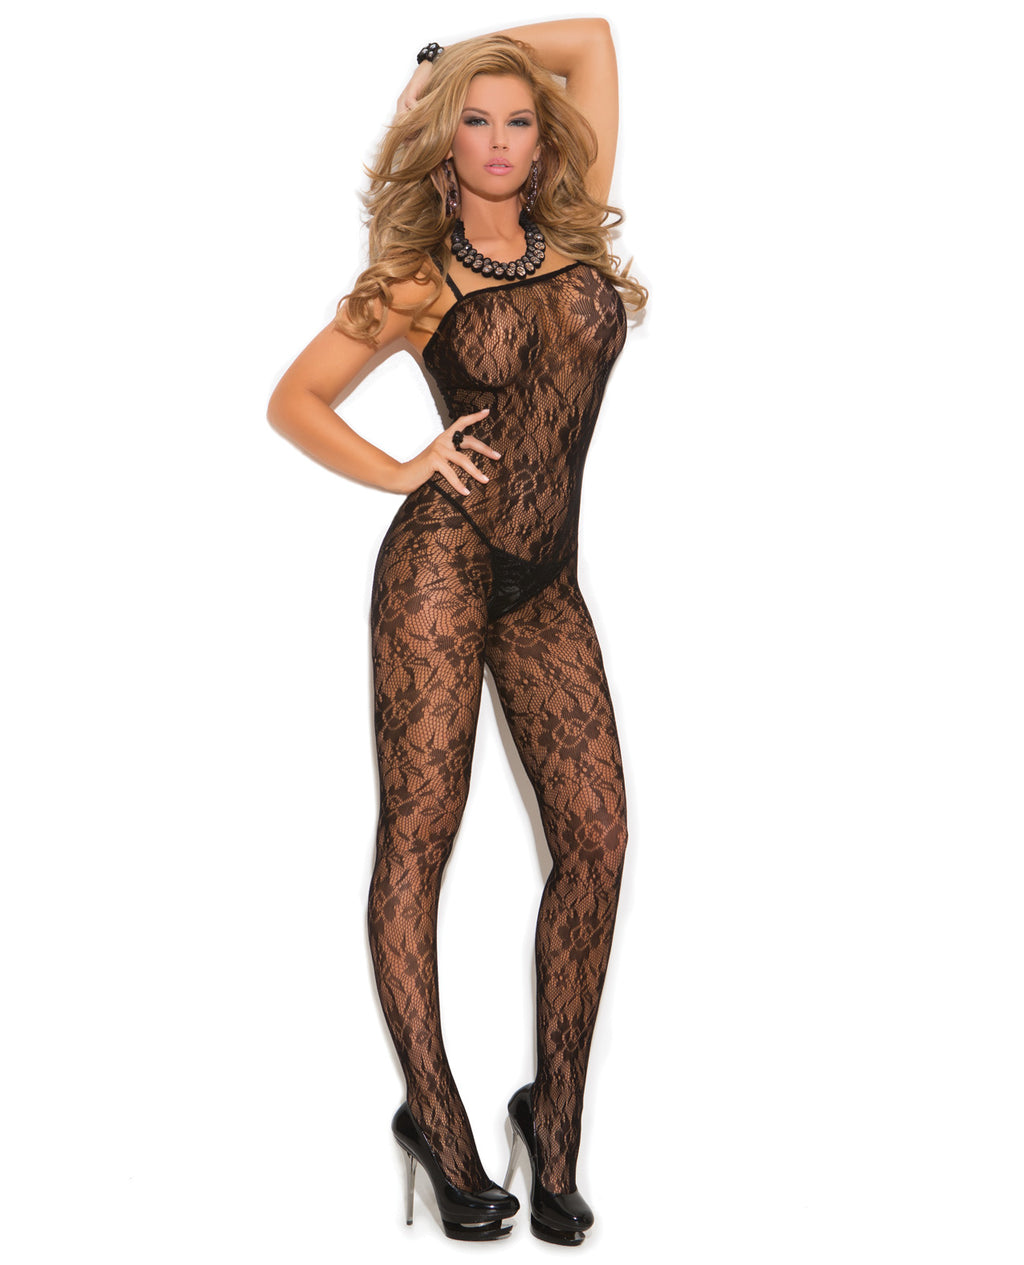 *Rose Lace Bodystocking w/Open Crotch Black O/SLingerie - Packaged